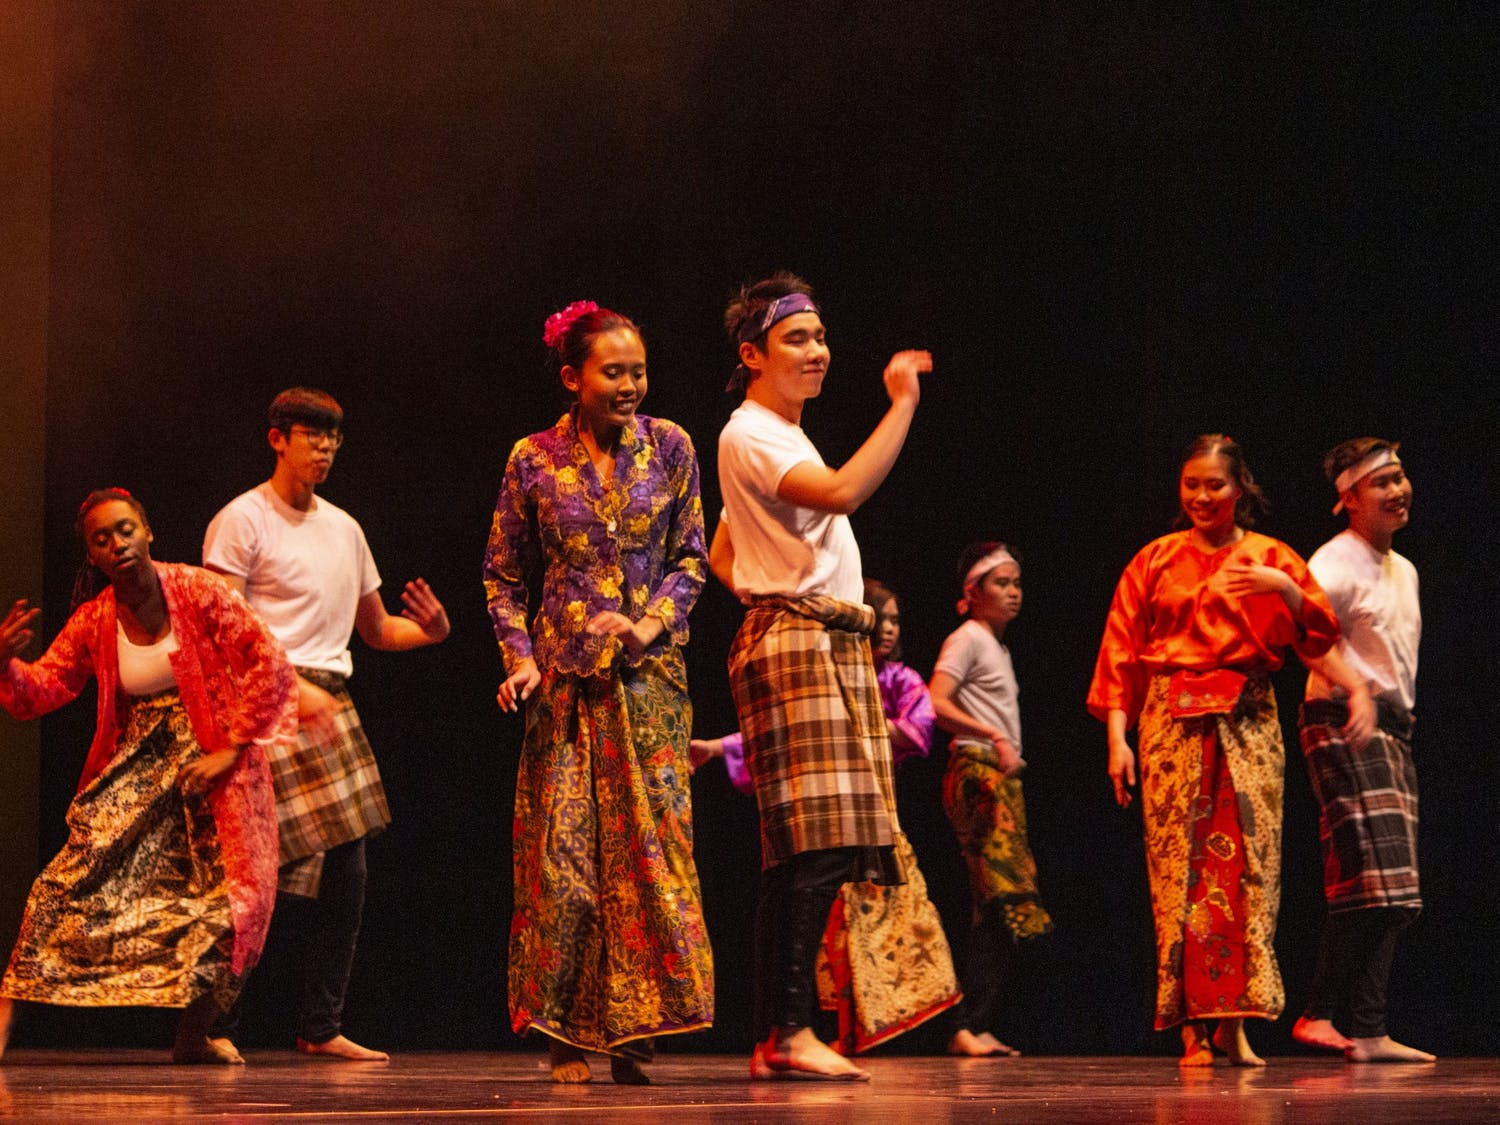 Students with backgrounds from seven southeast Asian countries performed together as Malaysian SA.